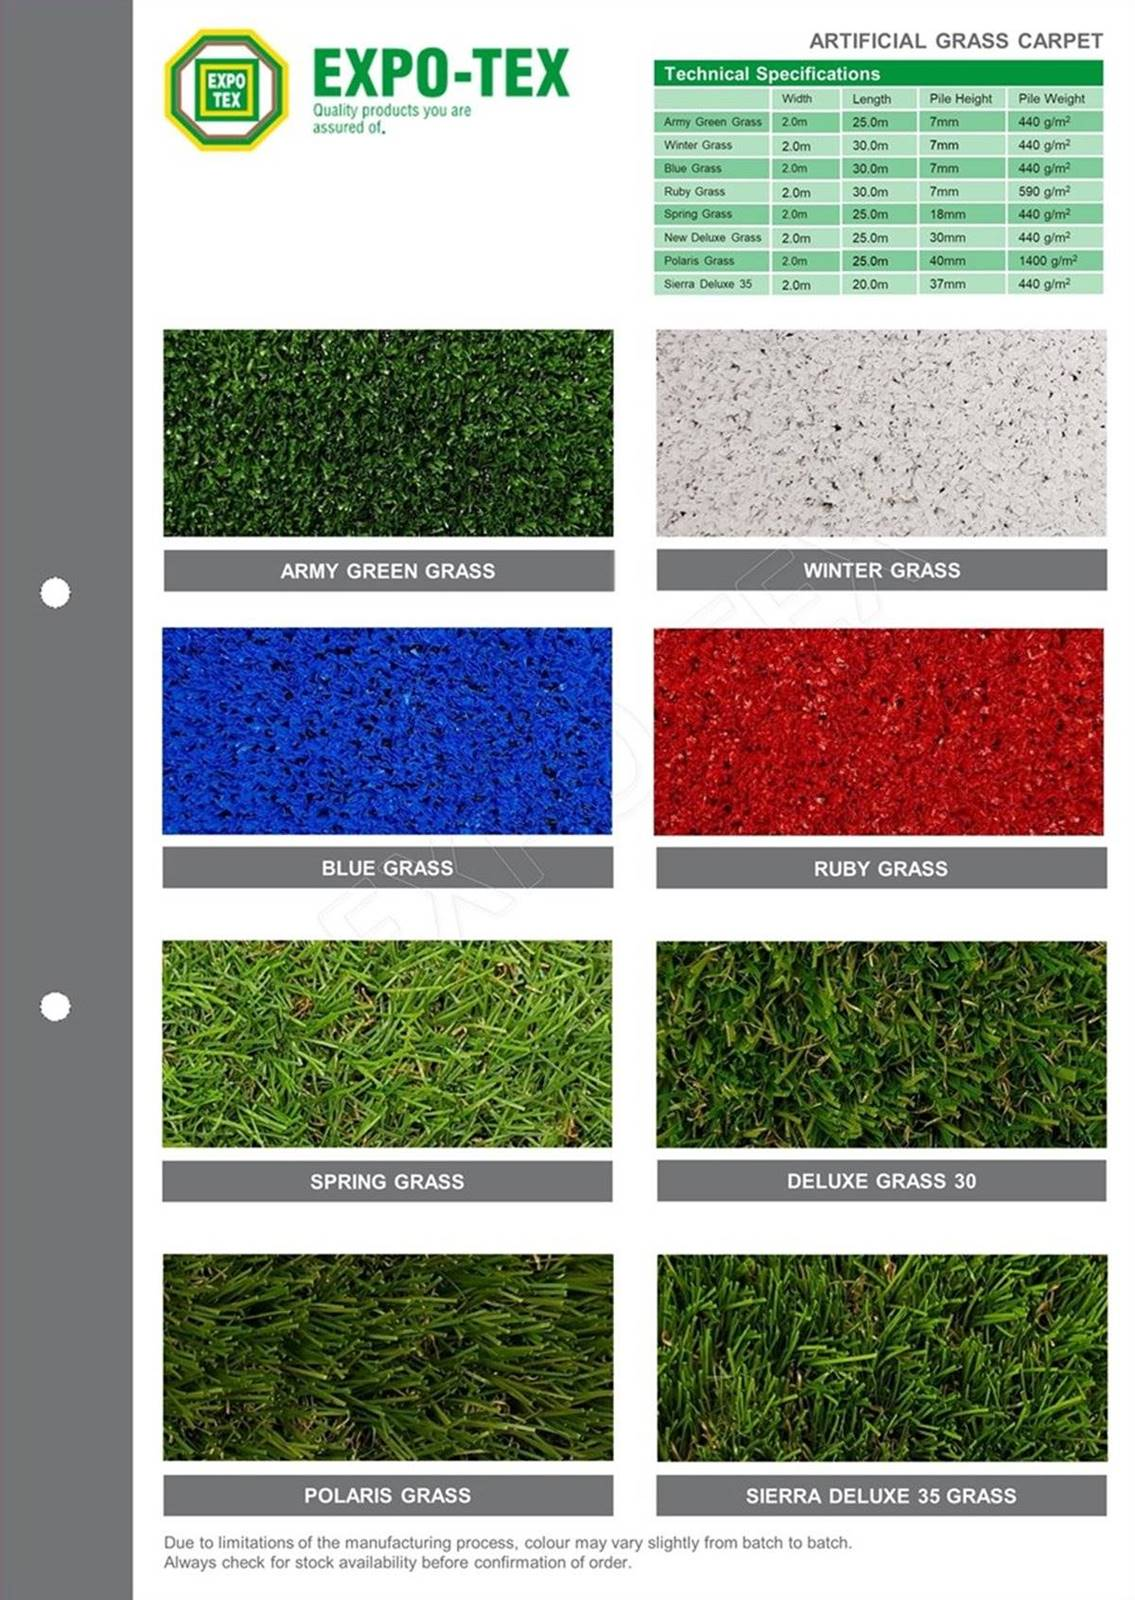 Exhibition carpet, expo carpet, event carpet, grass carpet, fake grass, artificial grass carpet, green carpet, red carpet